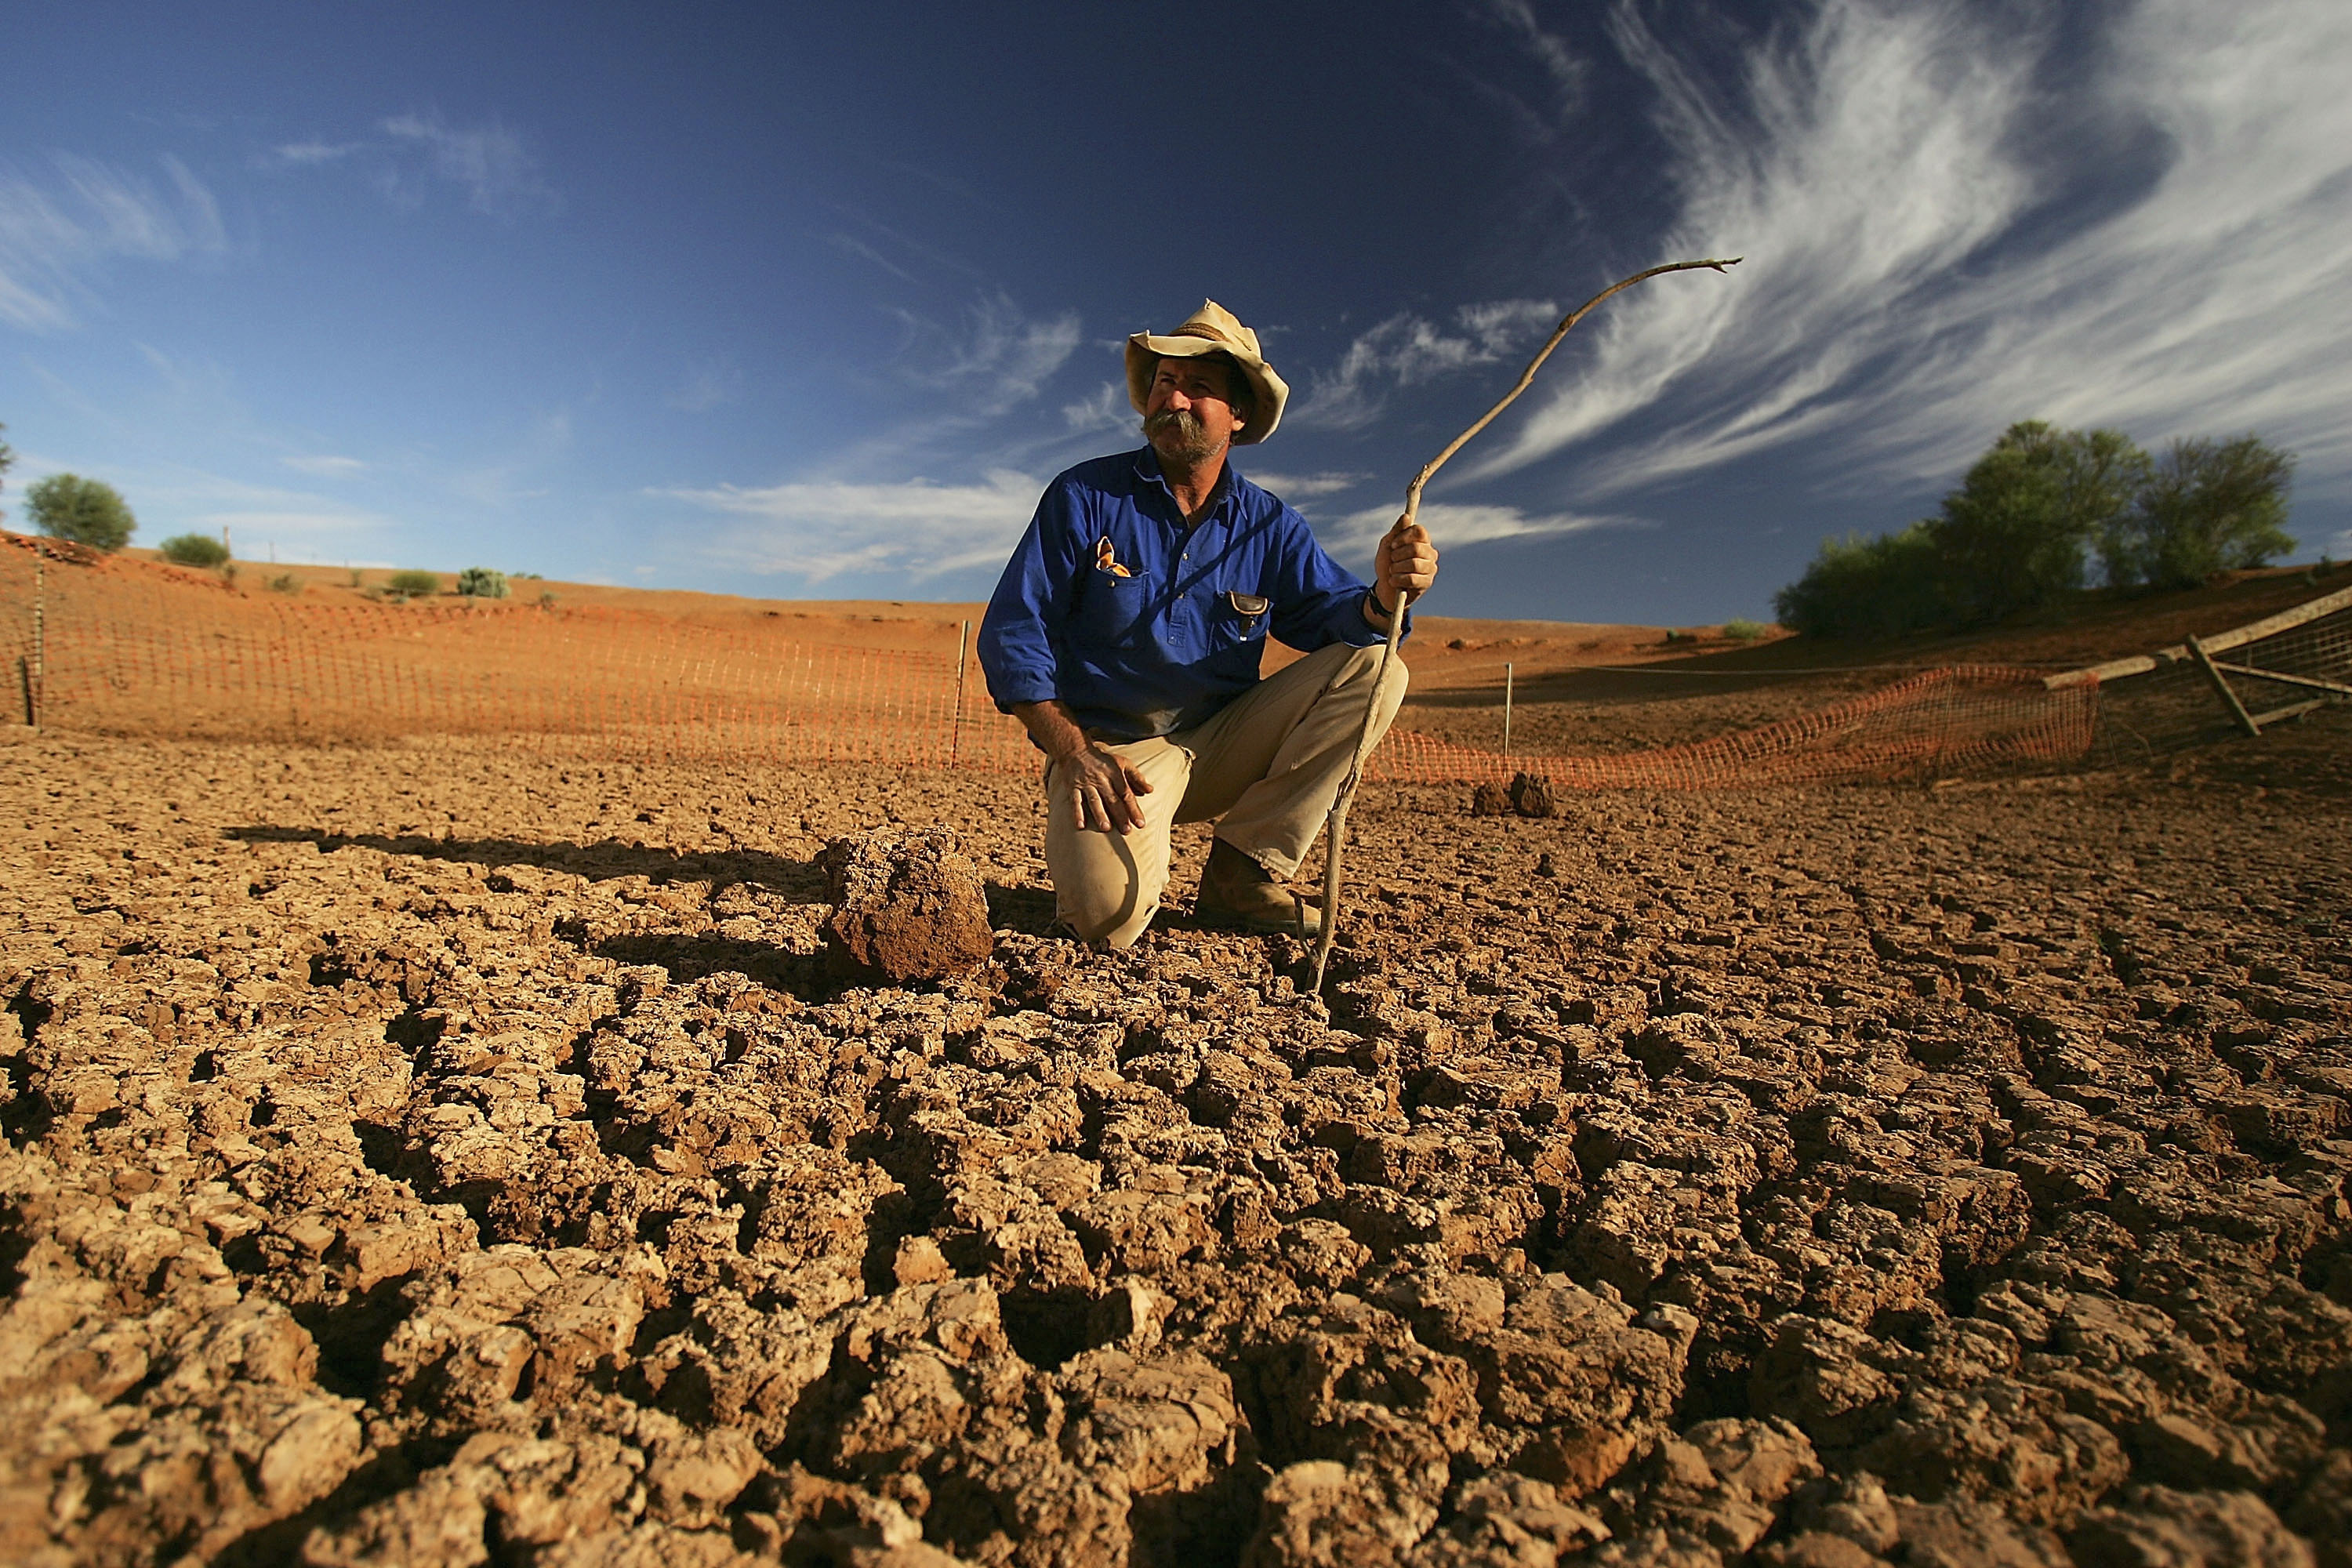 El Nino Threat Emphasises Need for Strong Action On Climate Change